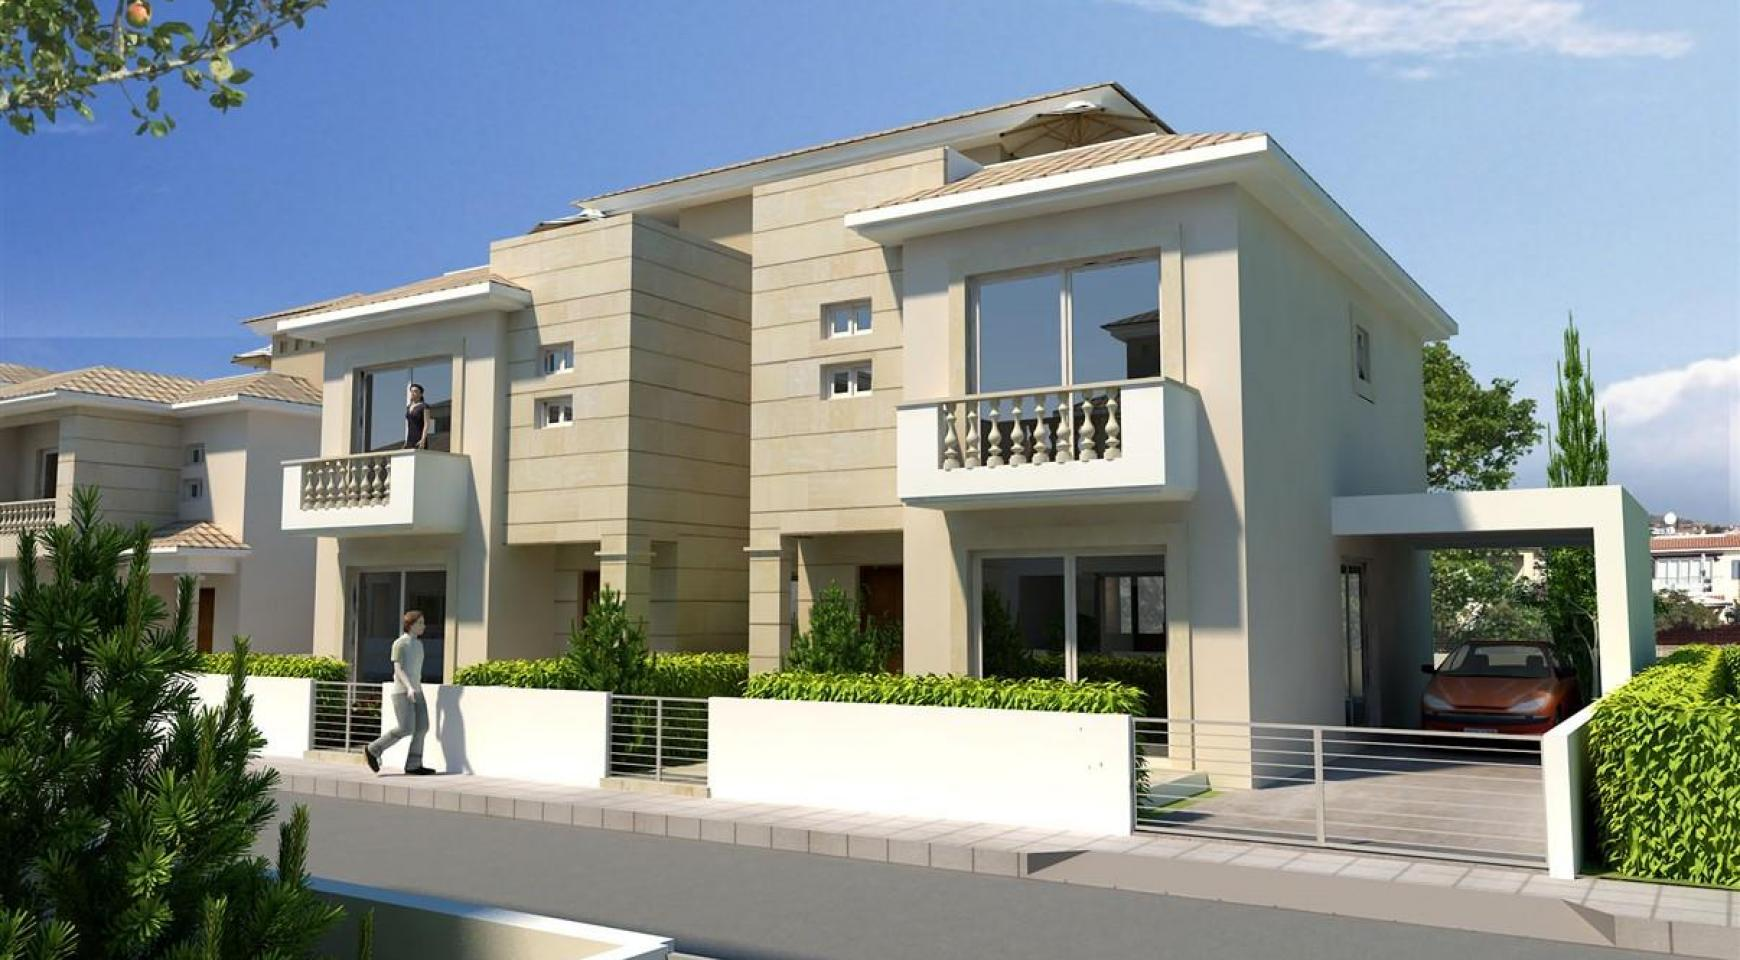 3 Bedroom Villa in New Project in Paphos - 24